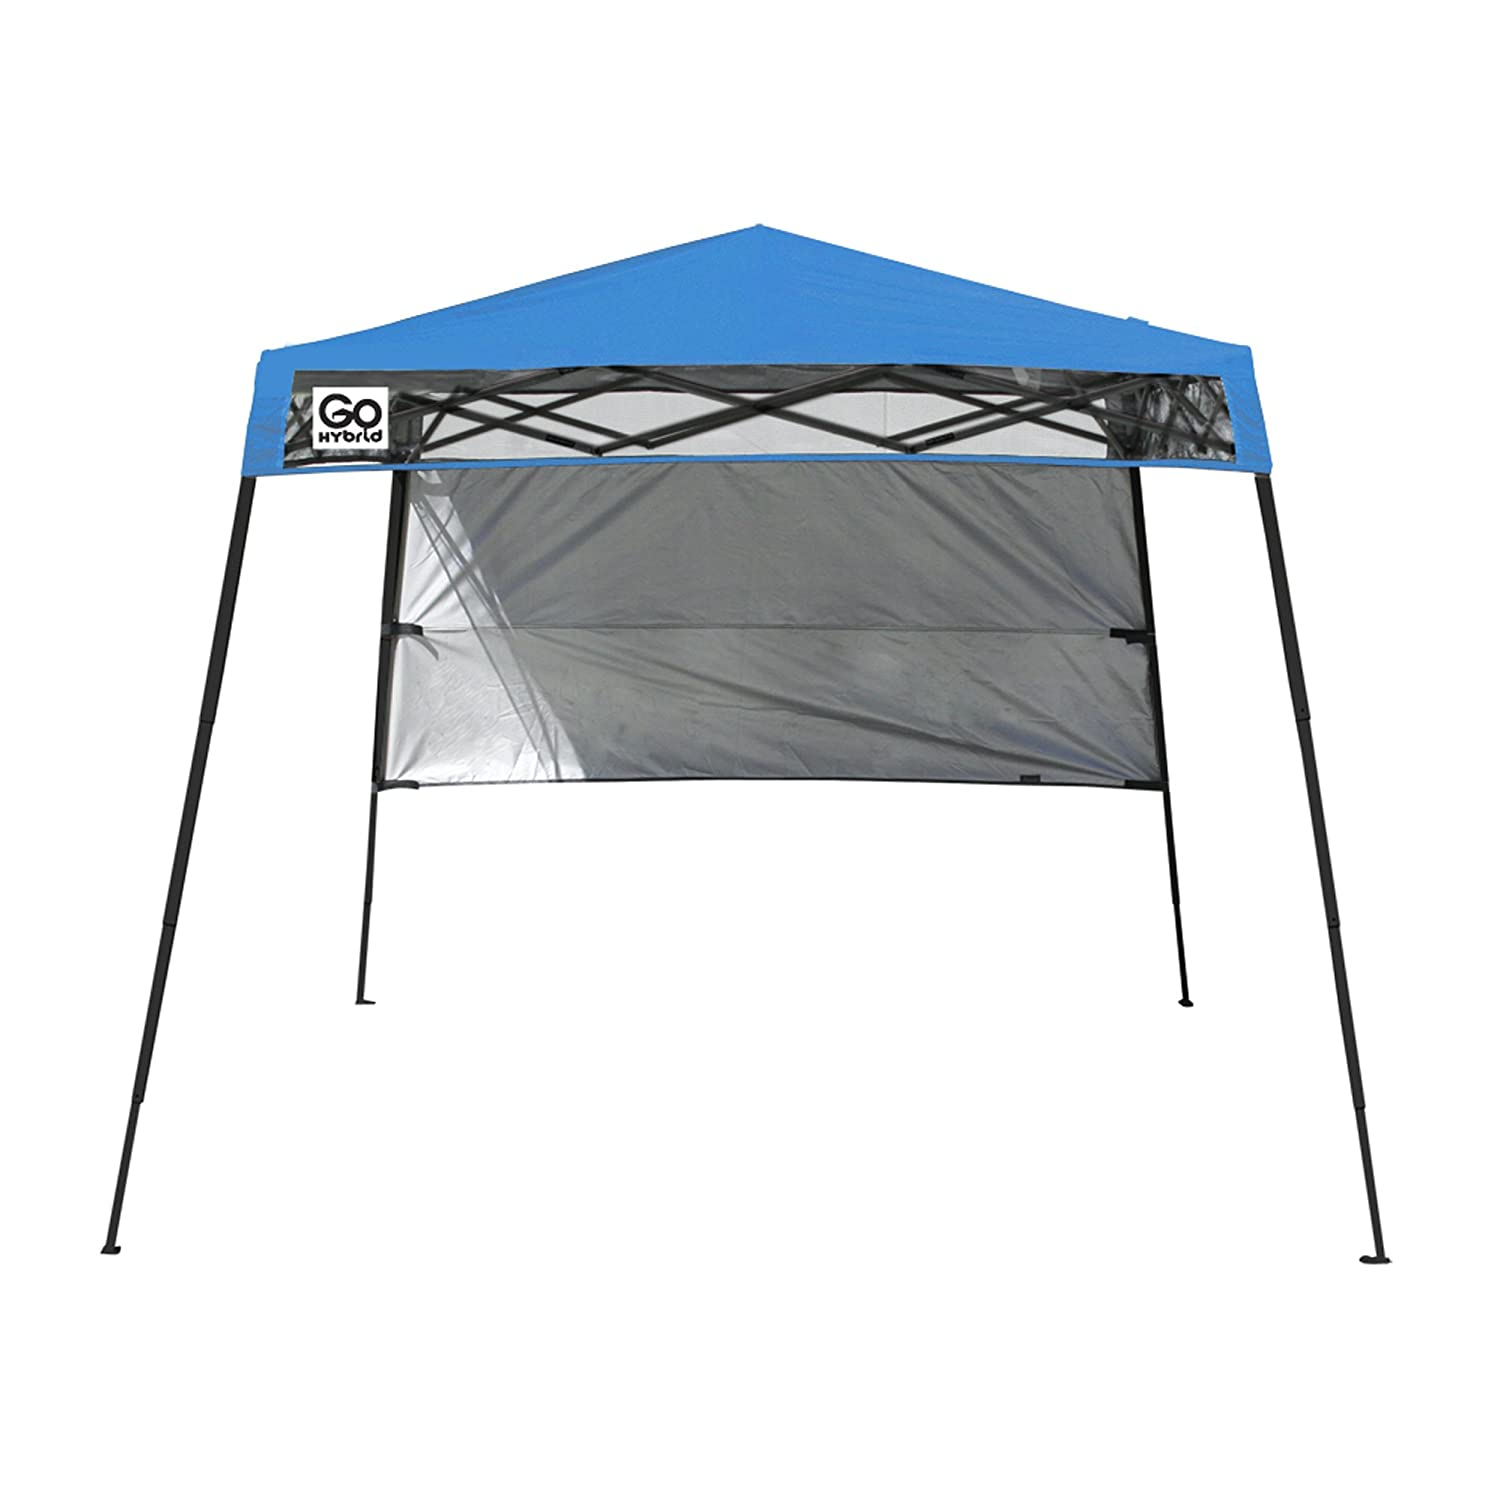 amazoncom quik shade go hybrid compact slant leg backpack canopy blue 7 x 7 foot pack of 2 garden outdoor - Compact Canopy 2016